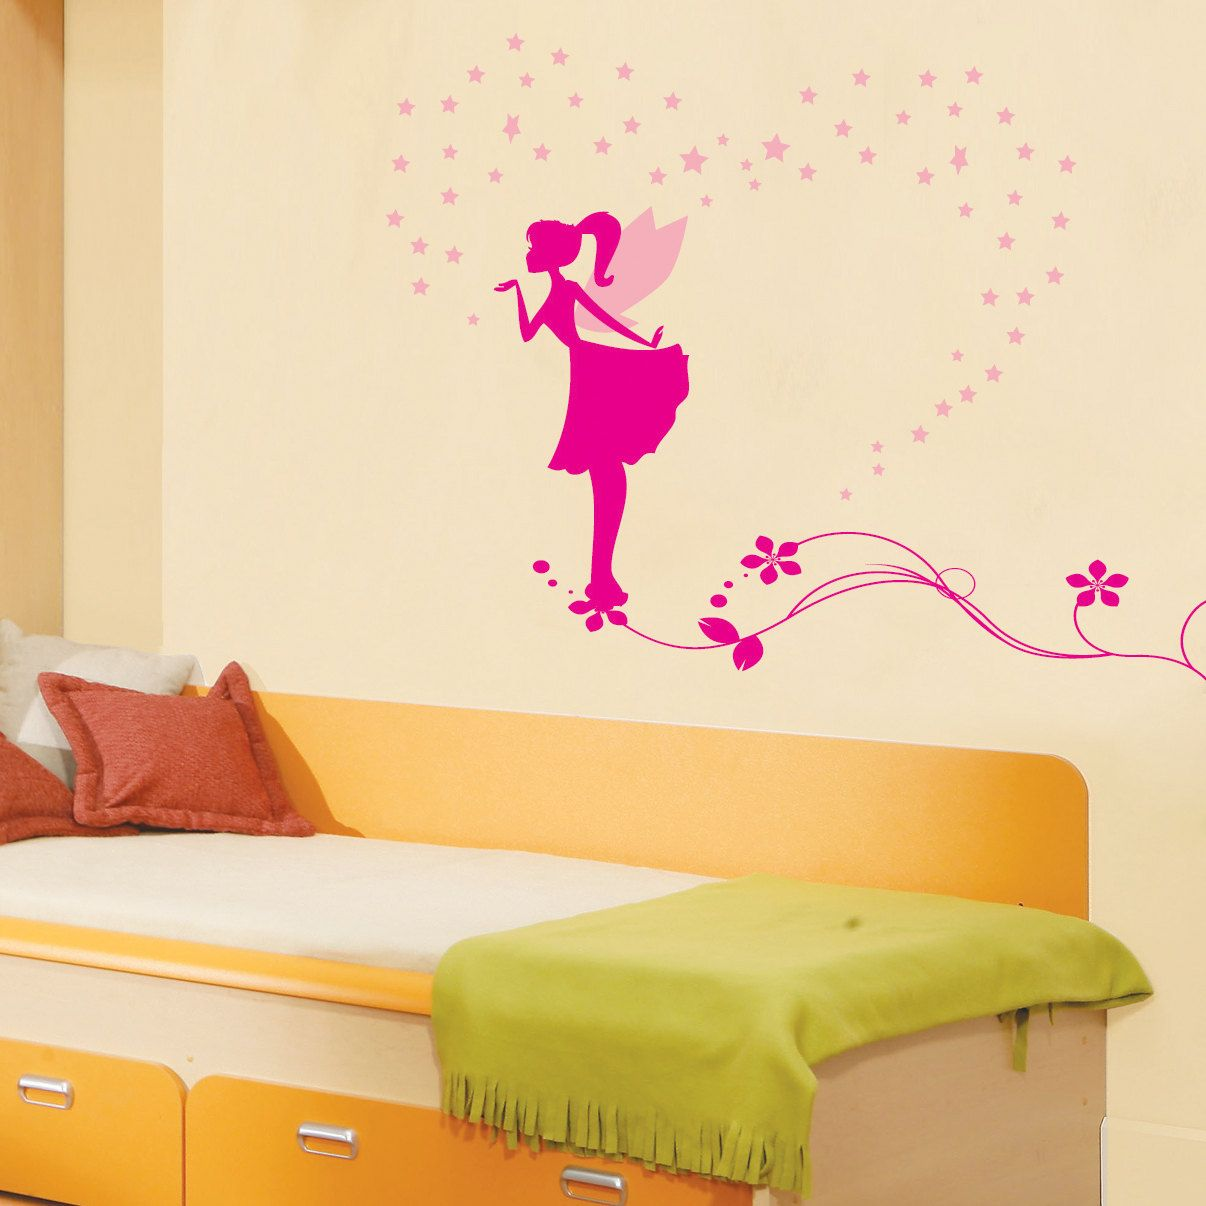 Wall decal | Cup ideas | Pinterest | Wall decals, Sticker vinyl and ...